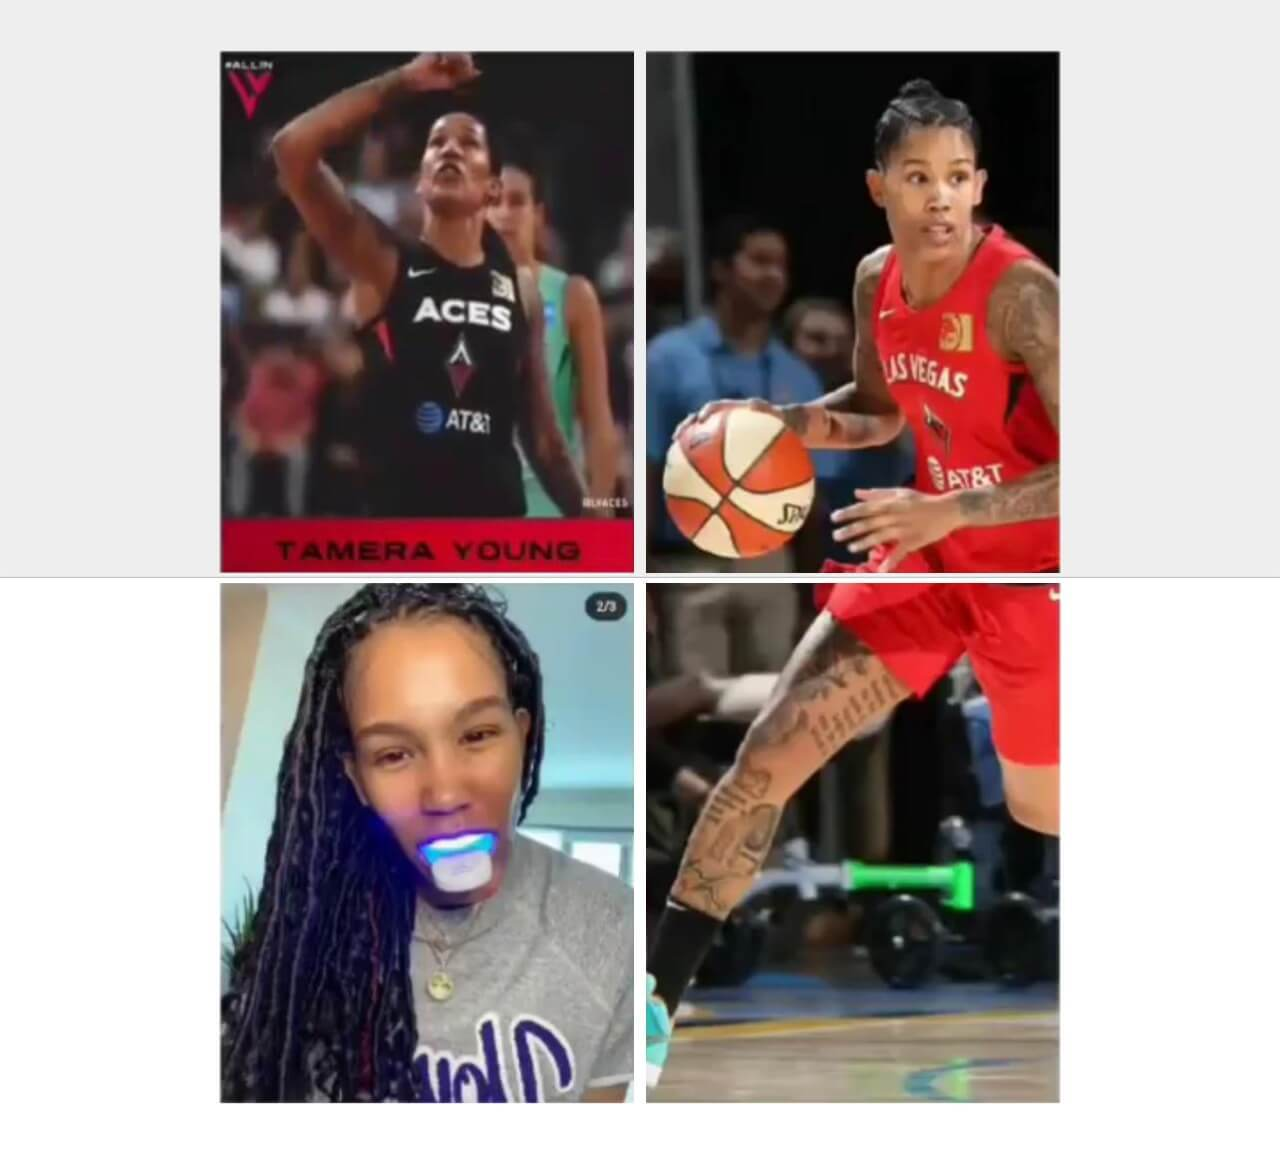 laserglow spa teeth whitening kit basketball player tamera young